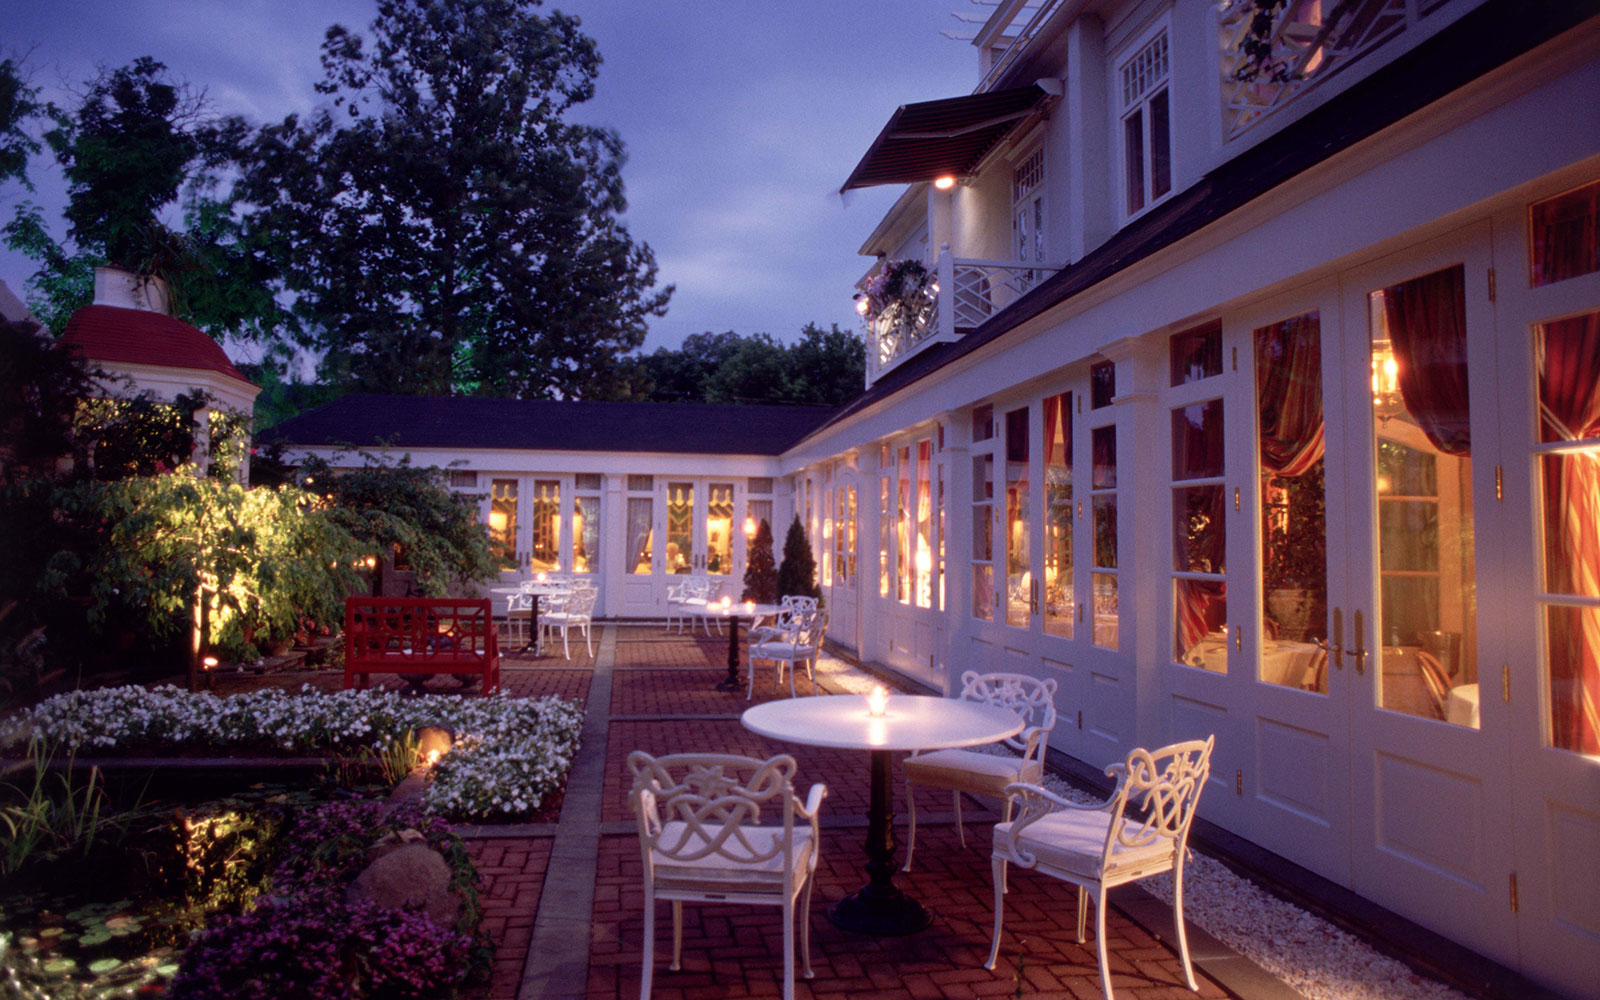 World's Top 50 Hotels: Inn at Little Washington, Washington, Virginia